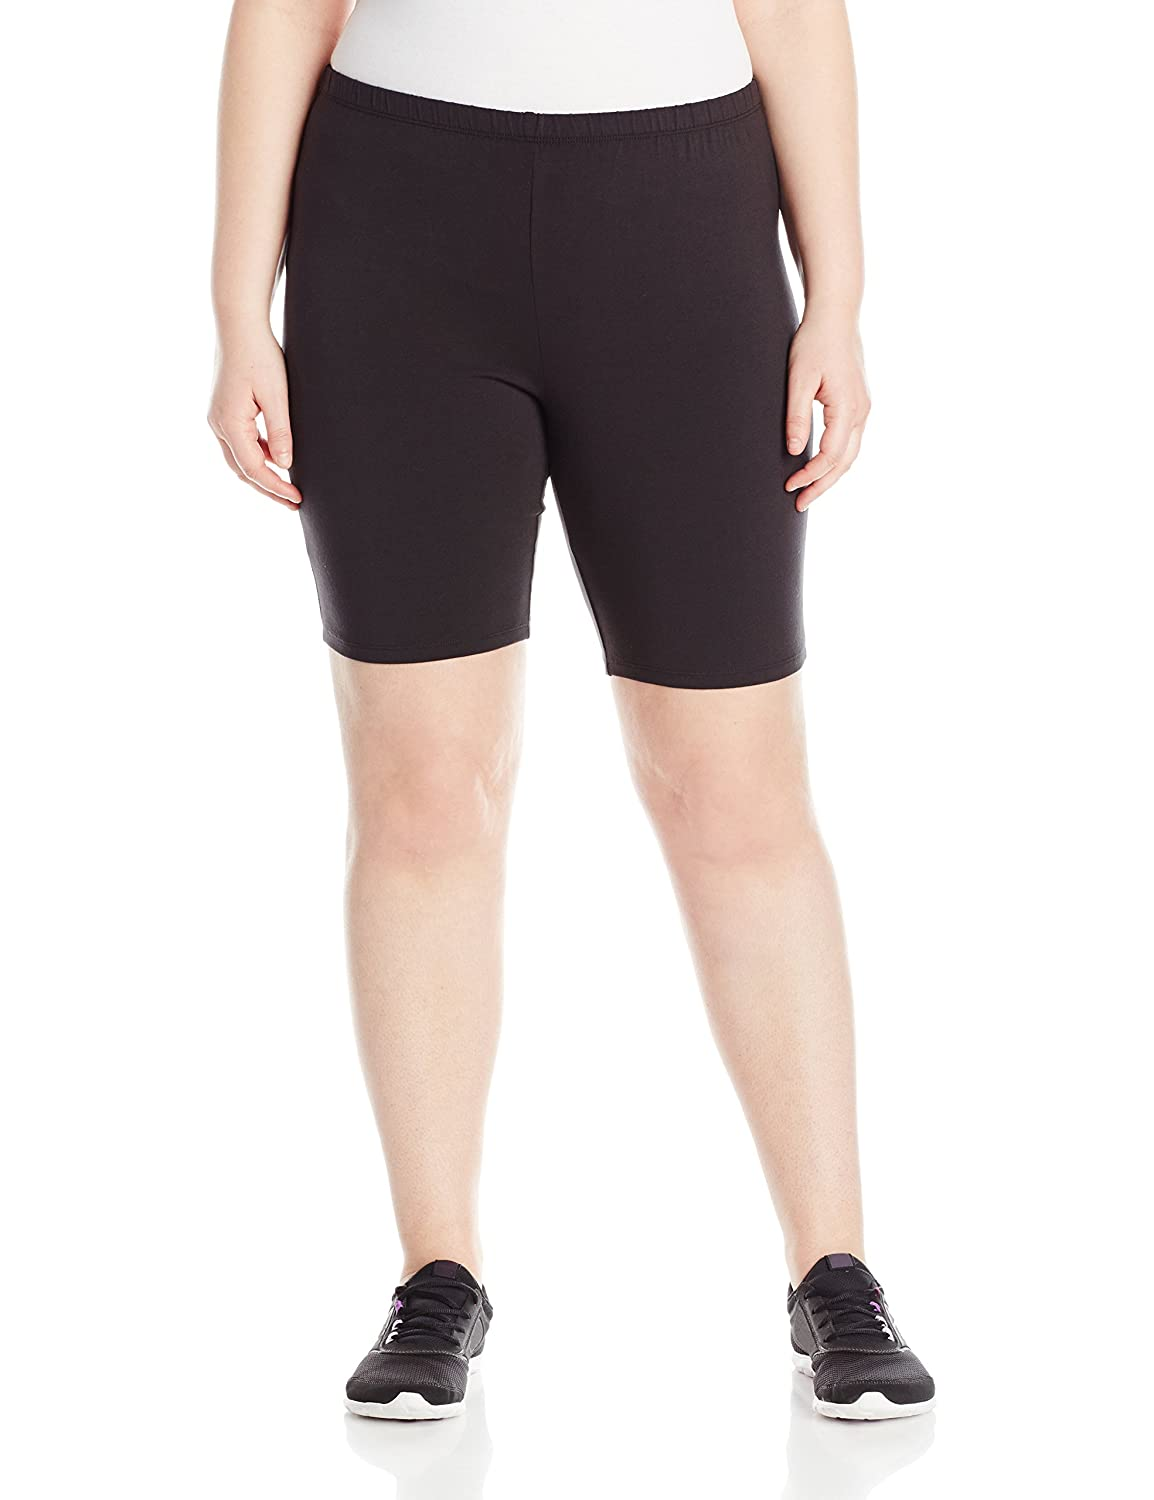 Just My Size Women's Plus-Size Stretch Jersey Bike Short Just My Size Activewear OJ251